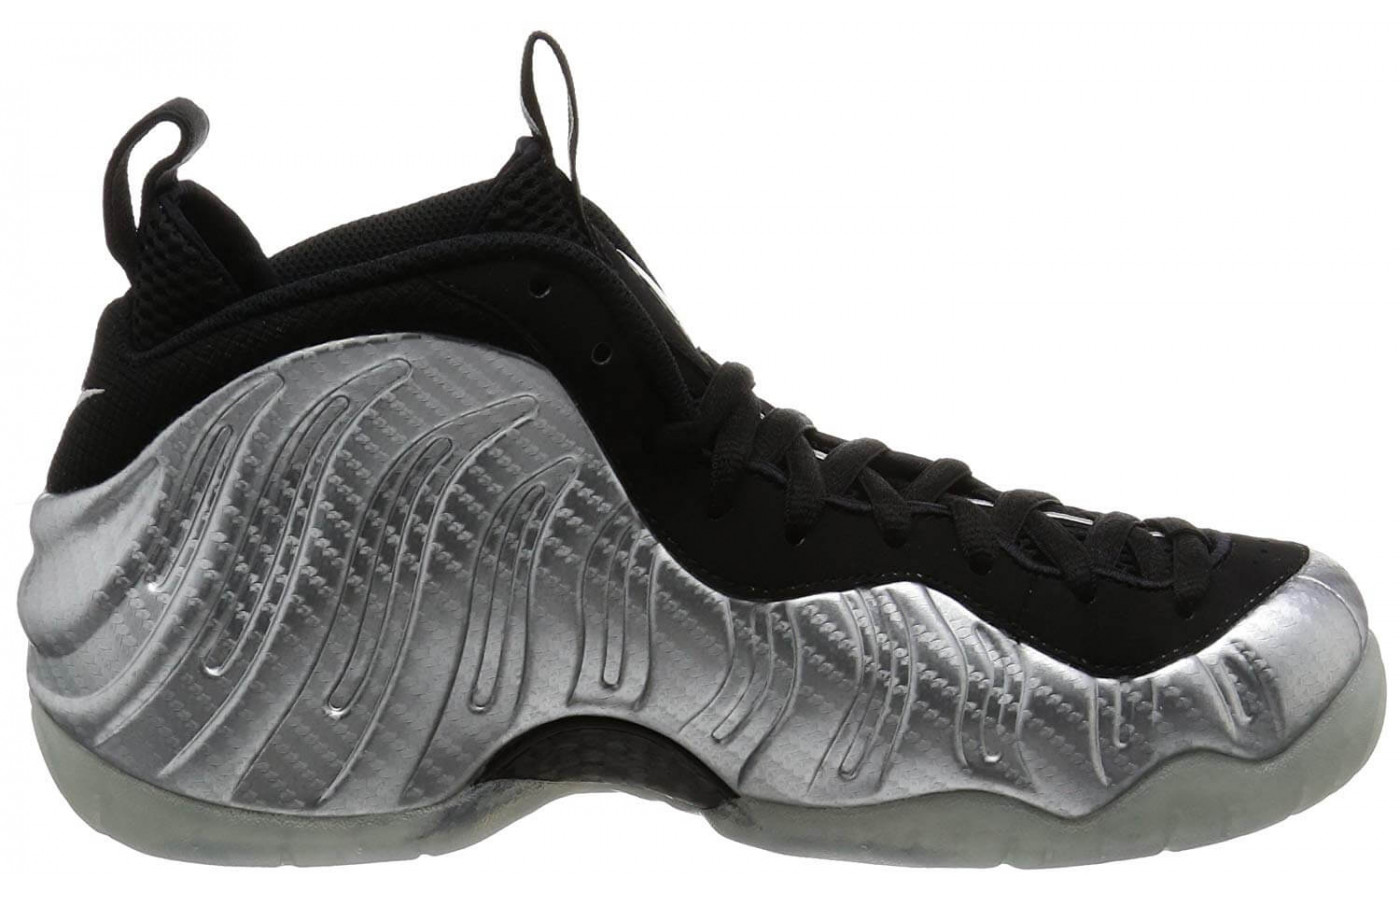 c4dba4e79a7 Nike Air Foamposite Pro  Nike Air Foamposite Pro side ...